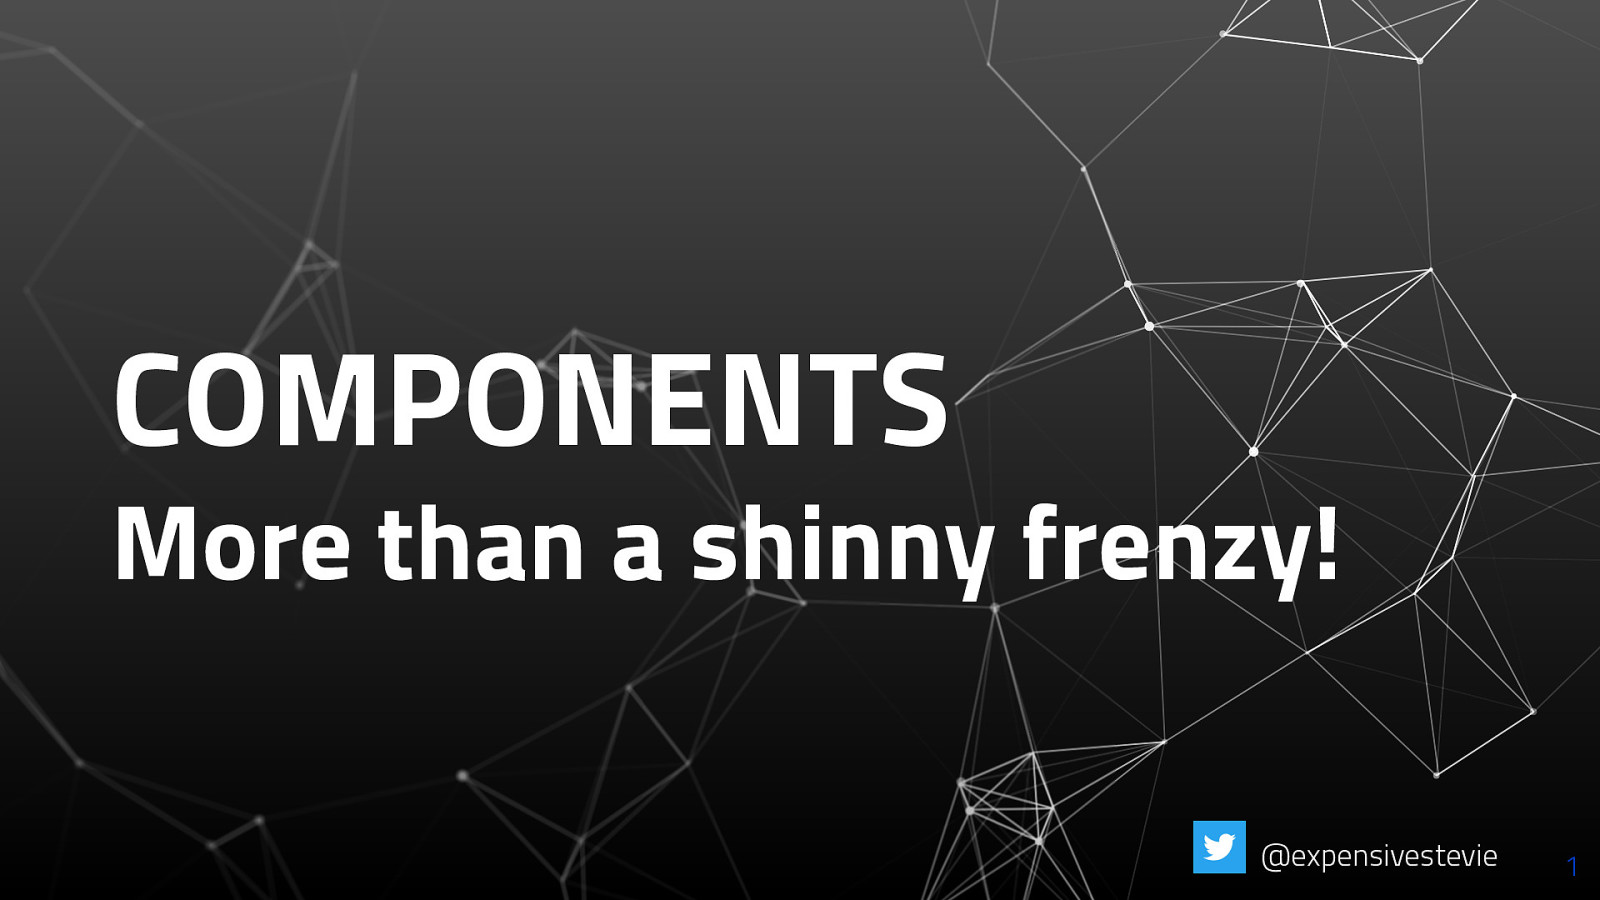 Components - more than a shinny frenzy